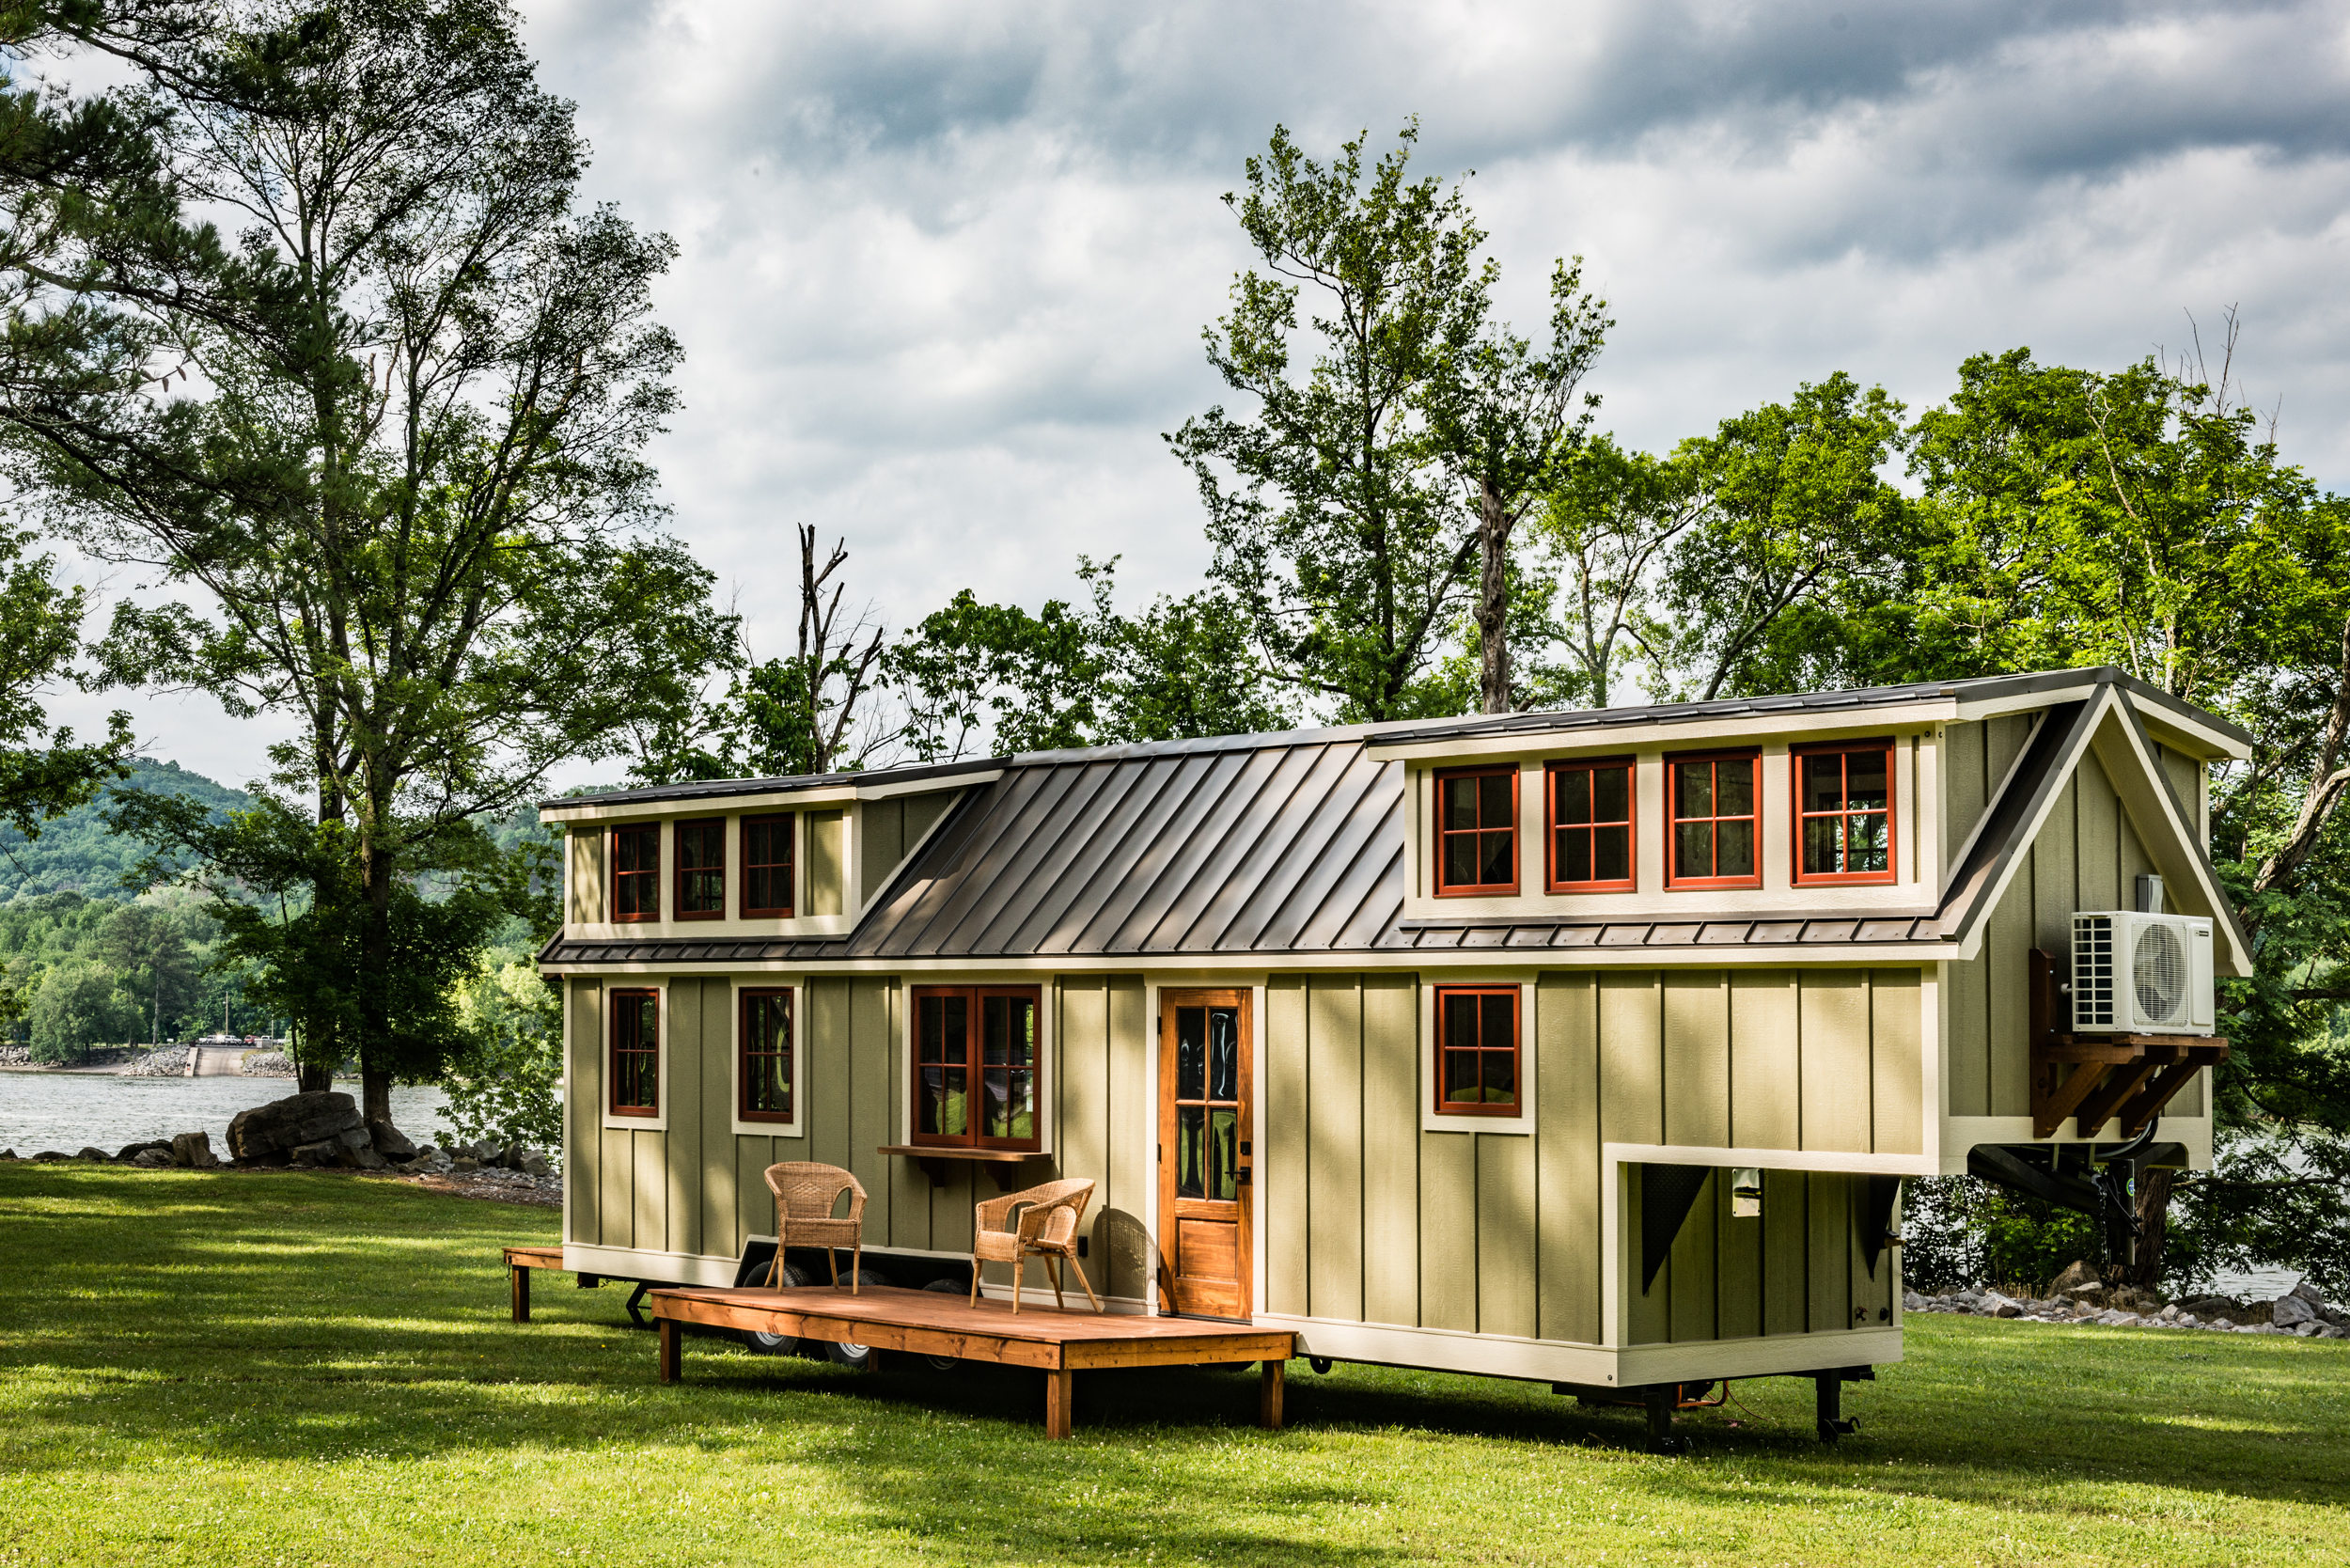 Timbercraft Tiny Homes are hand-crafted in Alabama.